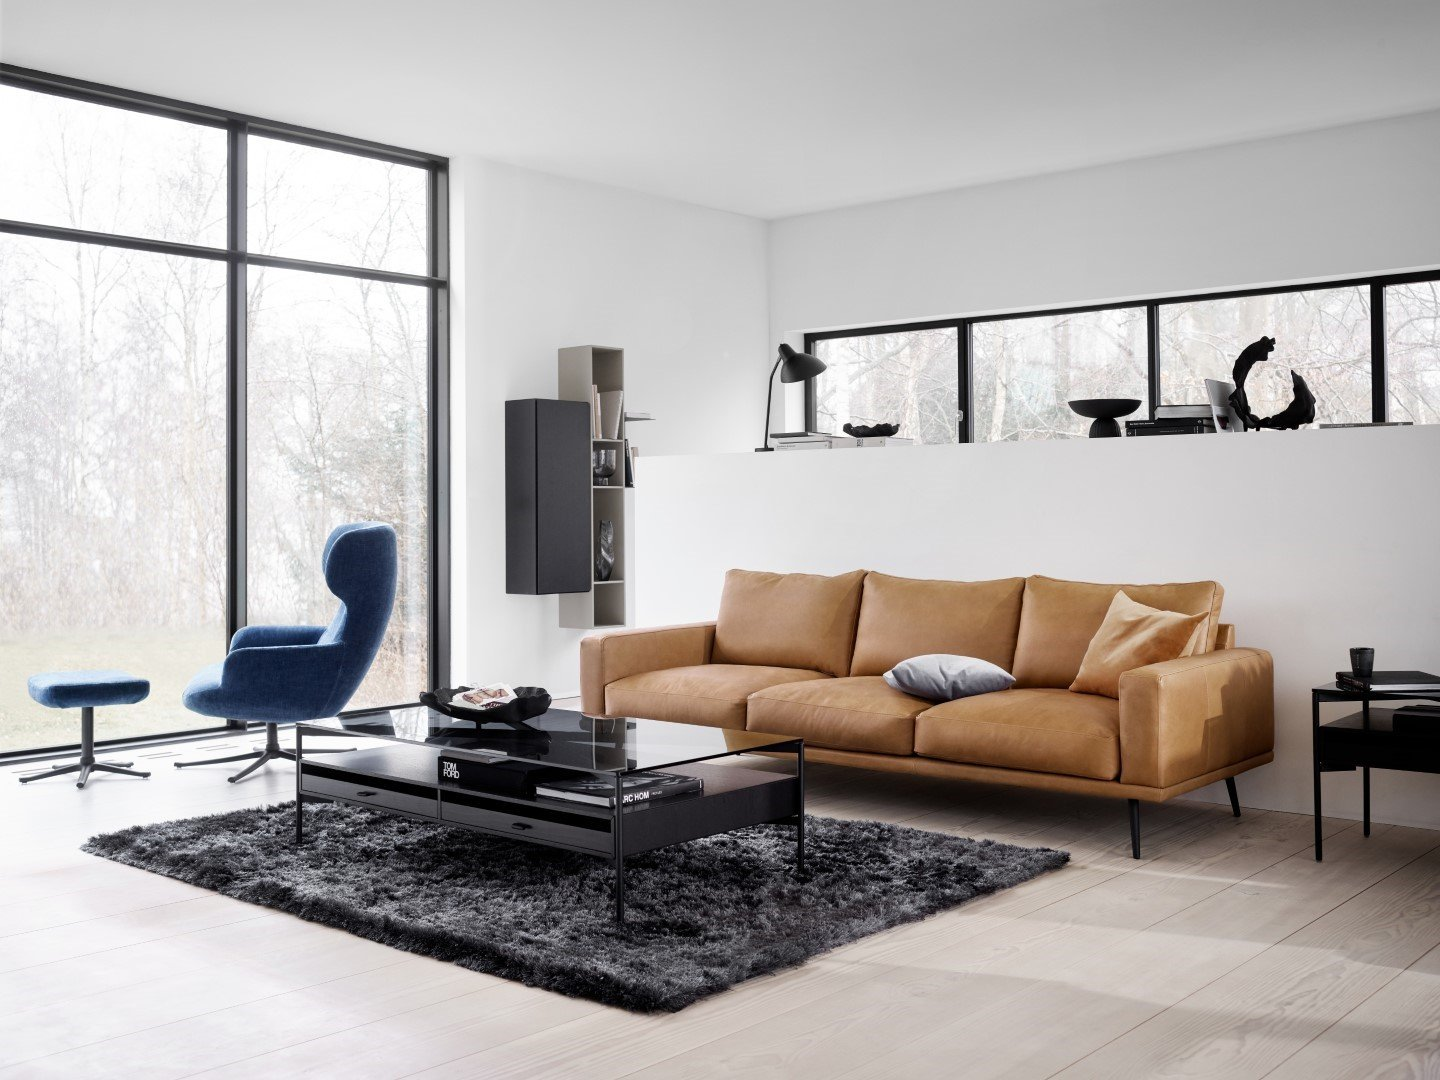 Customisable living room solutions